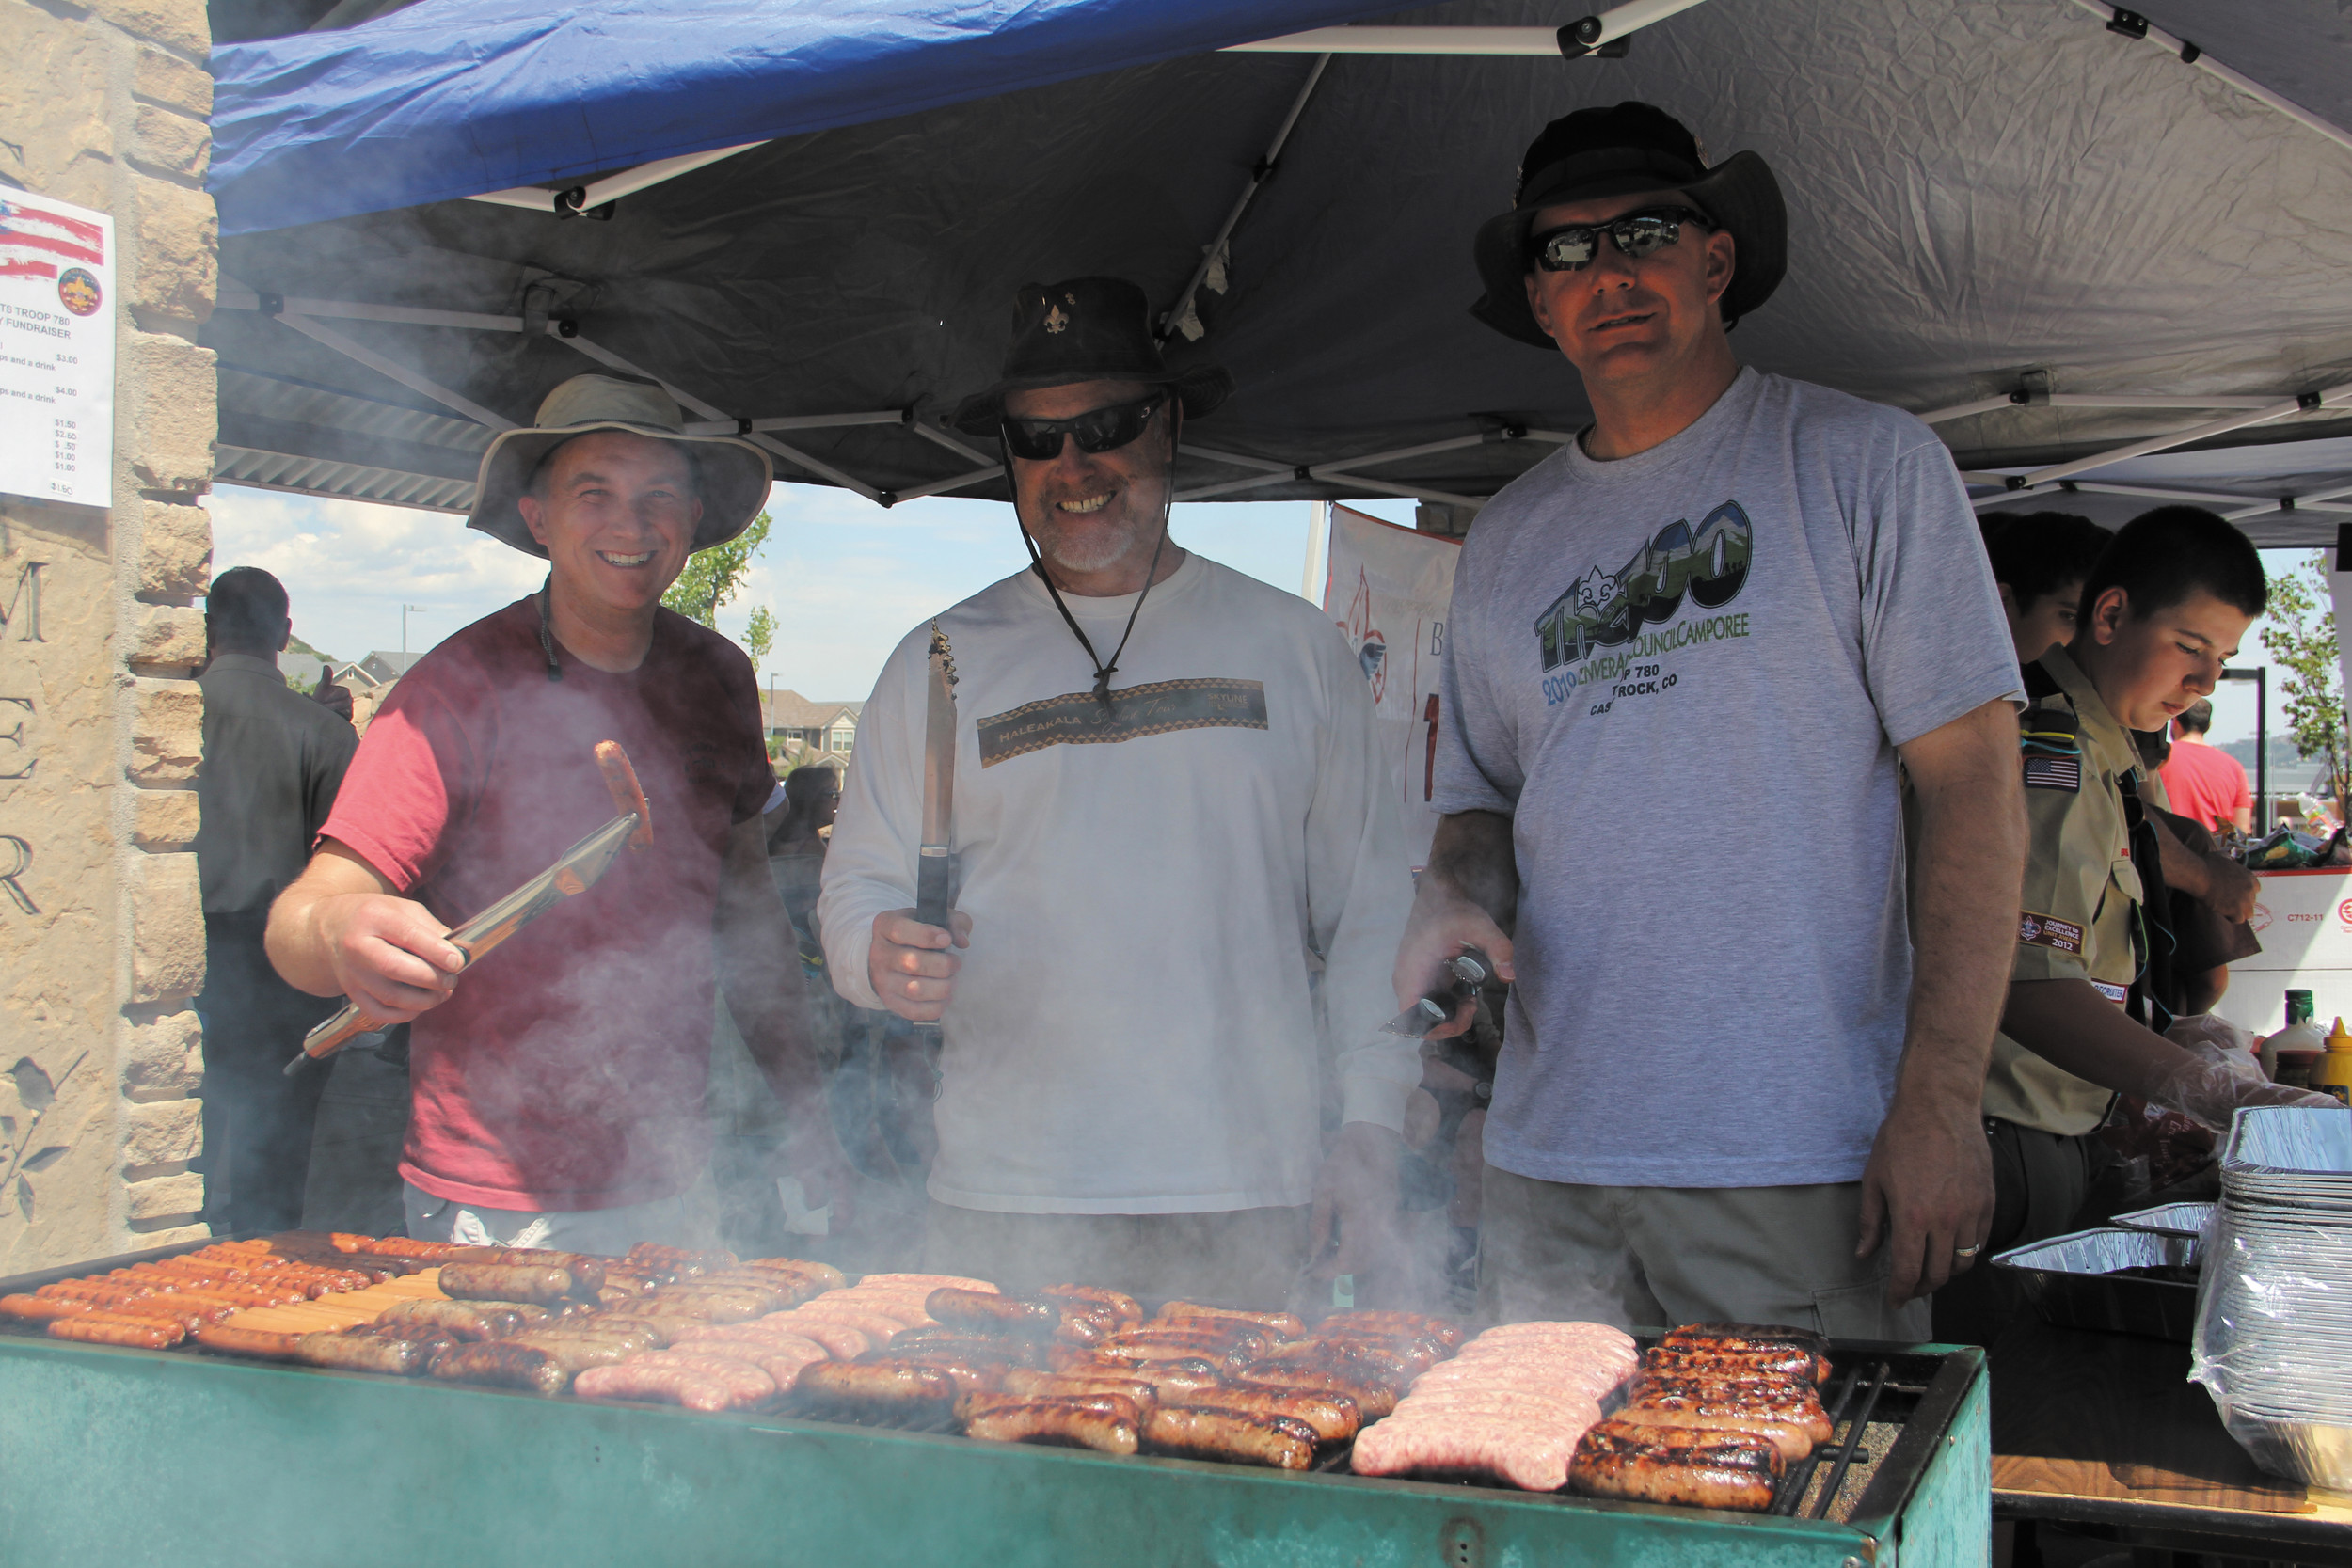 From left, Boy Scout Troop 780 parents Lem Scarborough, Mike Janda, and Jim Nelson grill up some bratwursts and hot dogs as part of the Fourth of July celebration at Bison Park in Castle Rock.